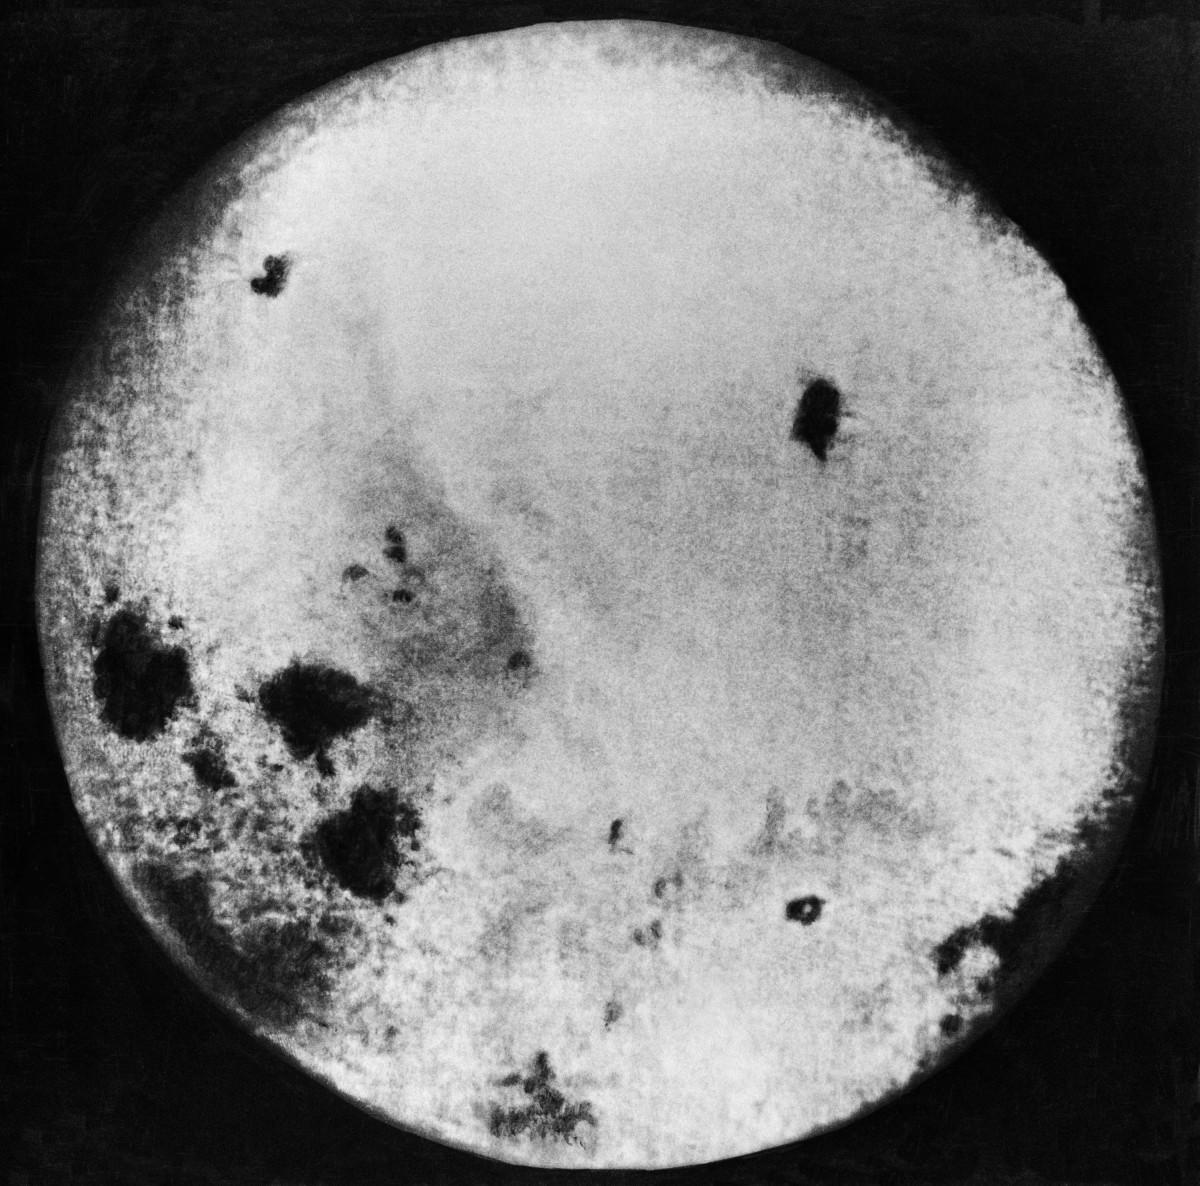 Photograph of the far side of the moon taken by the Luna 3 space probe on October 28, 1959.